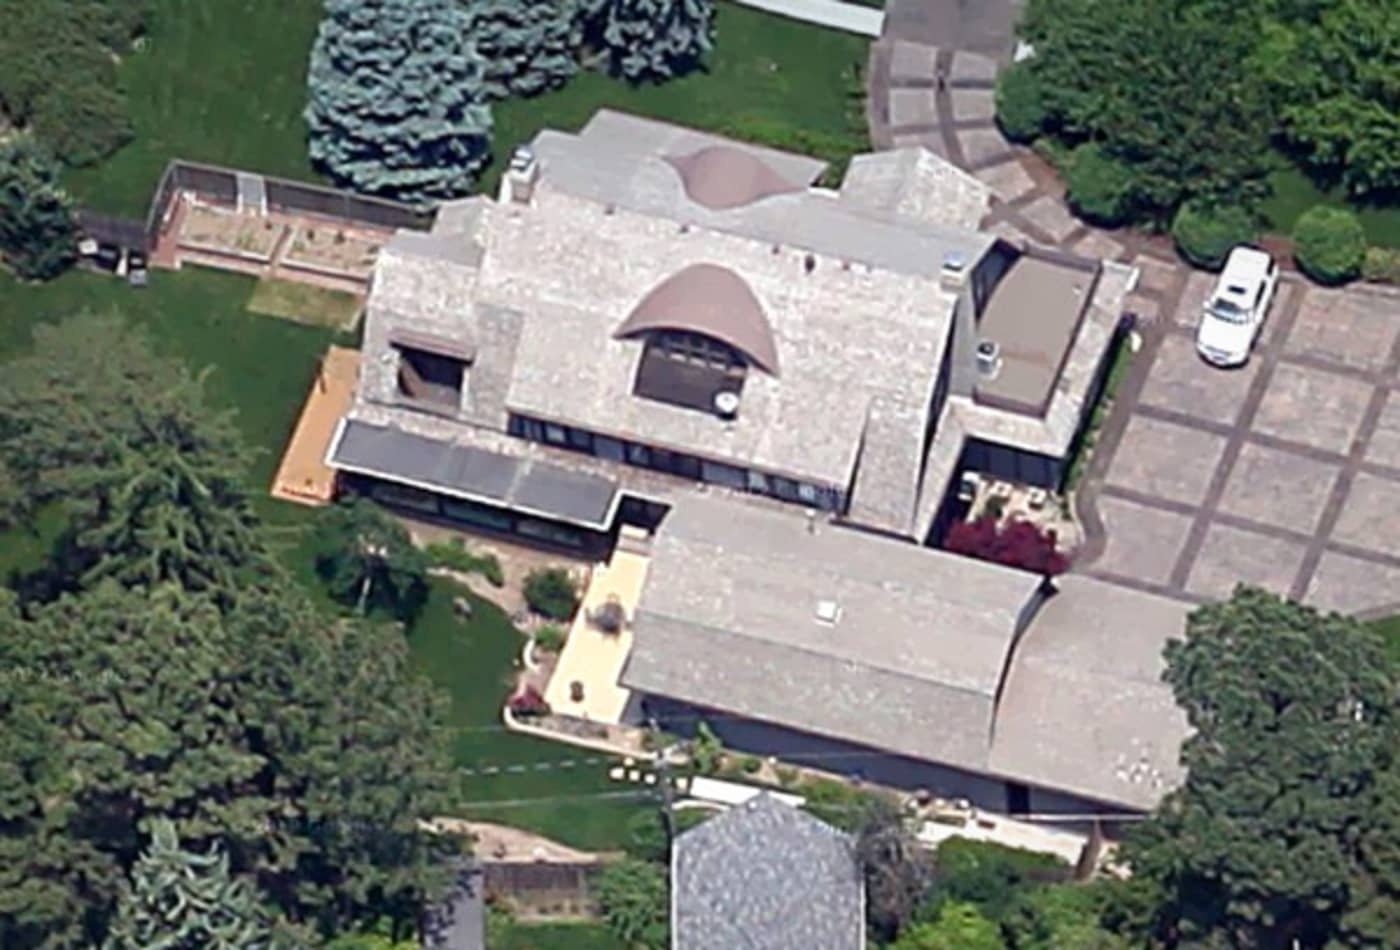 48336324 Omaha-Nebraska-Overhead-Homes-Billionaires-Warren-Buffett-CNBC.jpg